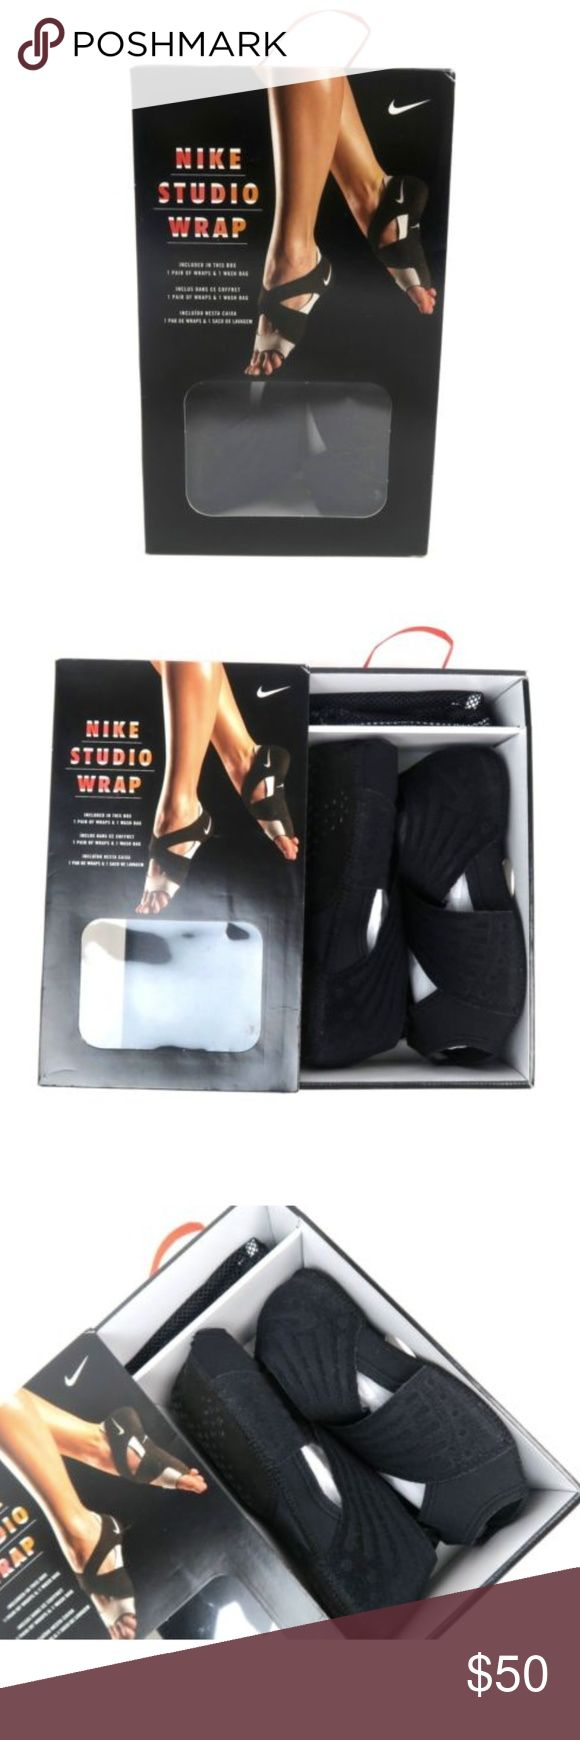 Nike Studio Wrap 4 Yoga Barre Dance Size 10 NIB Nike Studio Wrap 4 Size 10 The lightweight, stretch mesh top layer crisscrosses over the top of your foot and wraps around your heel for support right where you need it. A flocking material is bonded to the straps for essential structure without adding weight. The sandwich mesh bottom layer wraps your heel and toes for a breathable, supportive fit.  Silicone traction pattern on the bottom, Includes a garment bag and washing instructions for…